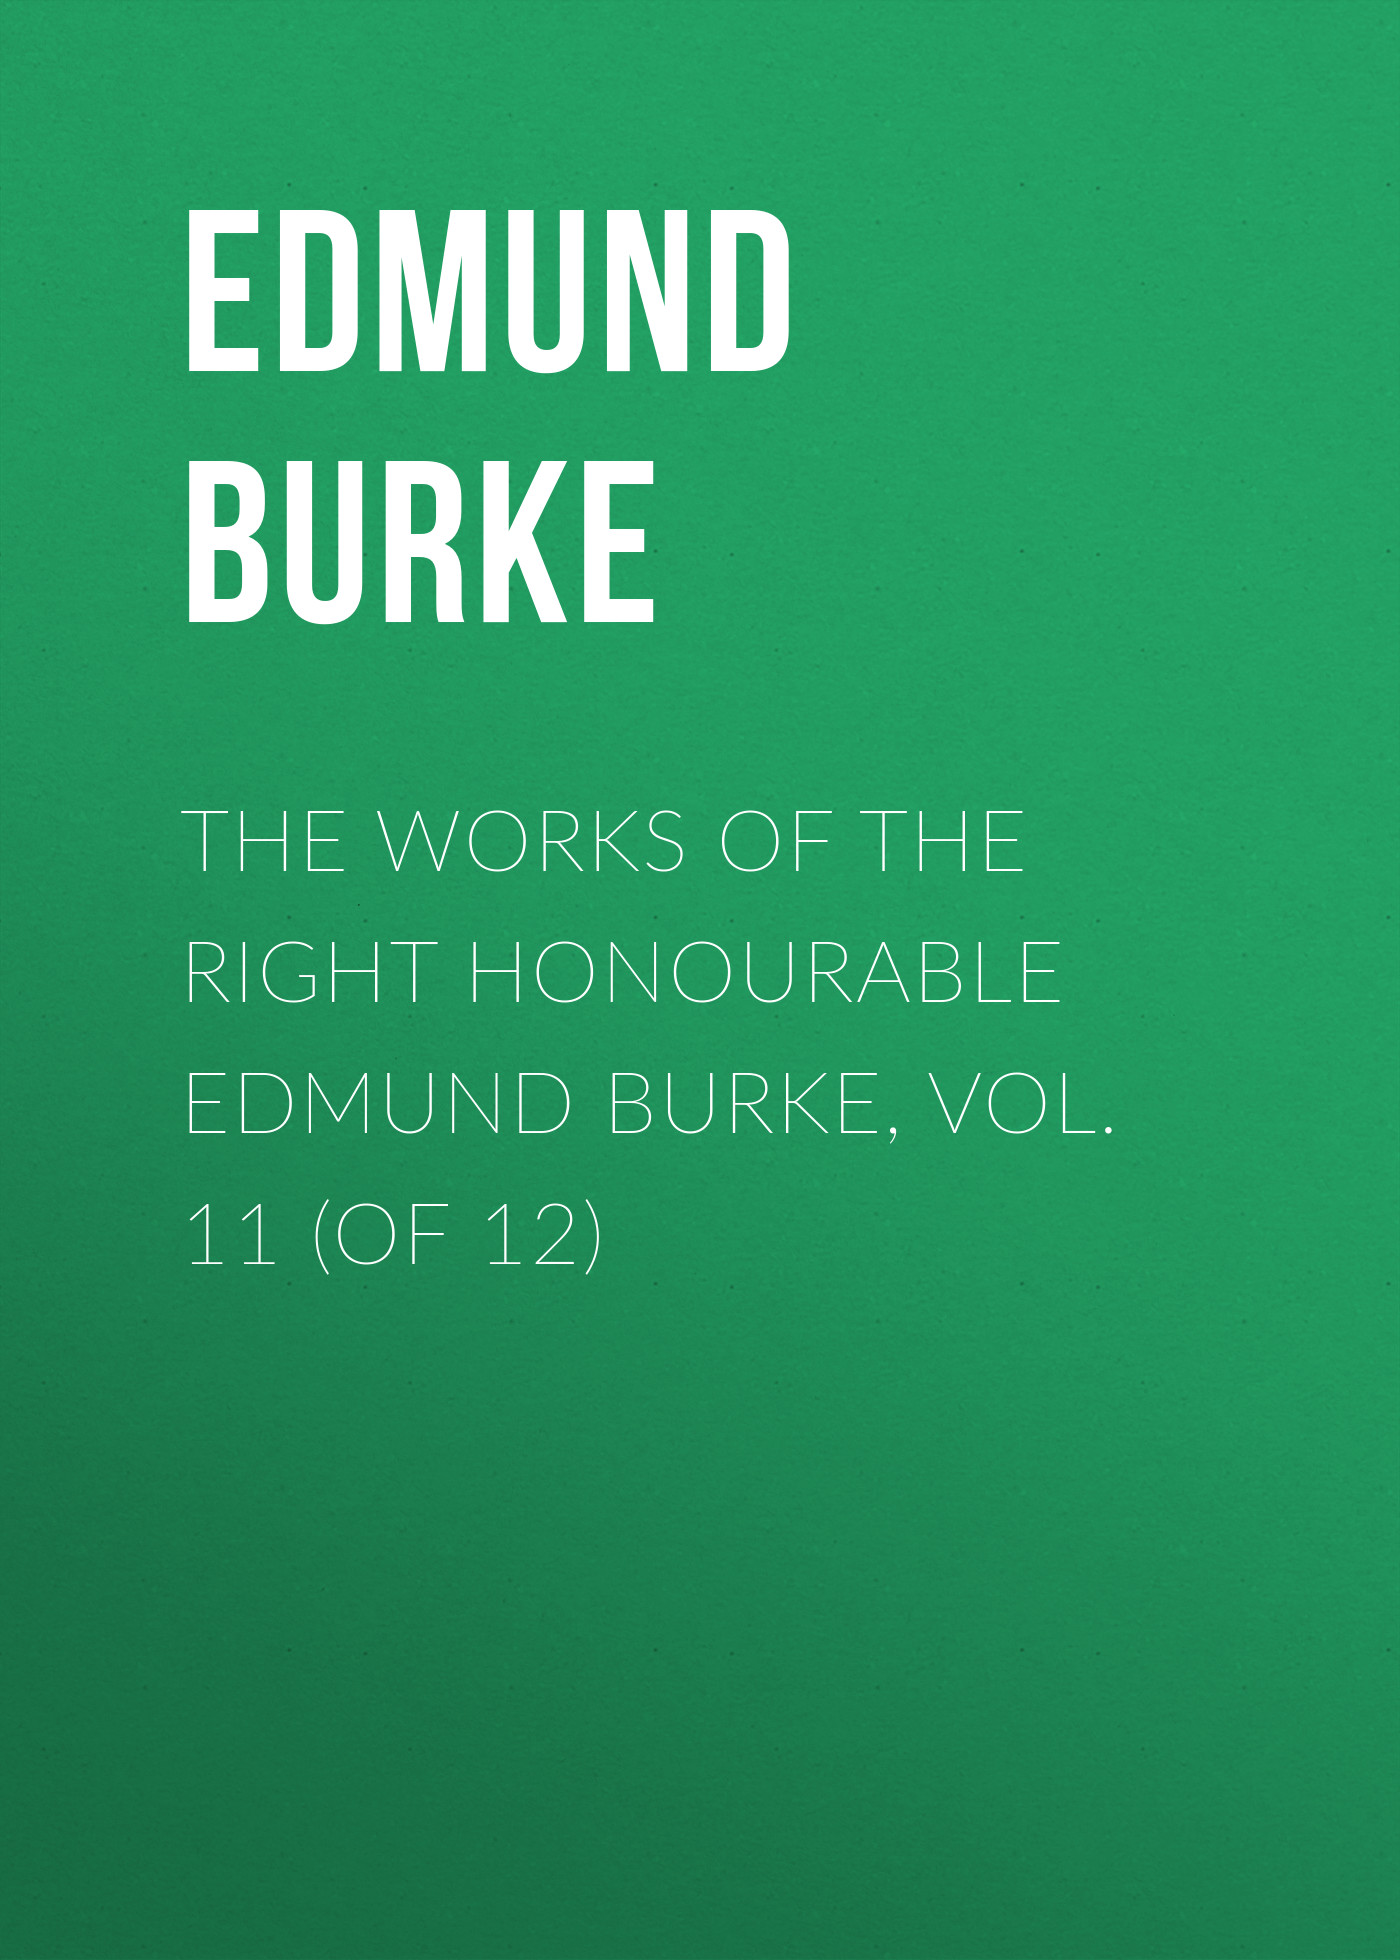 Edmund Burke The Works of the Right Honourable Edmund Burke, Vol. 11 (of 12) edmund burke the works of the right honourable edmund burke vol 12 of 12